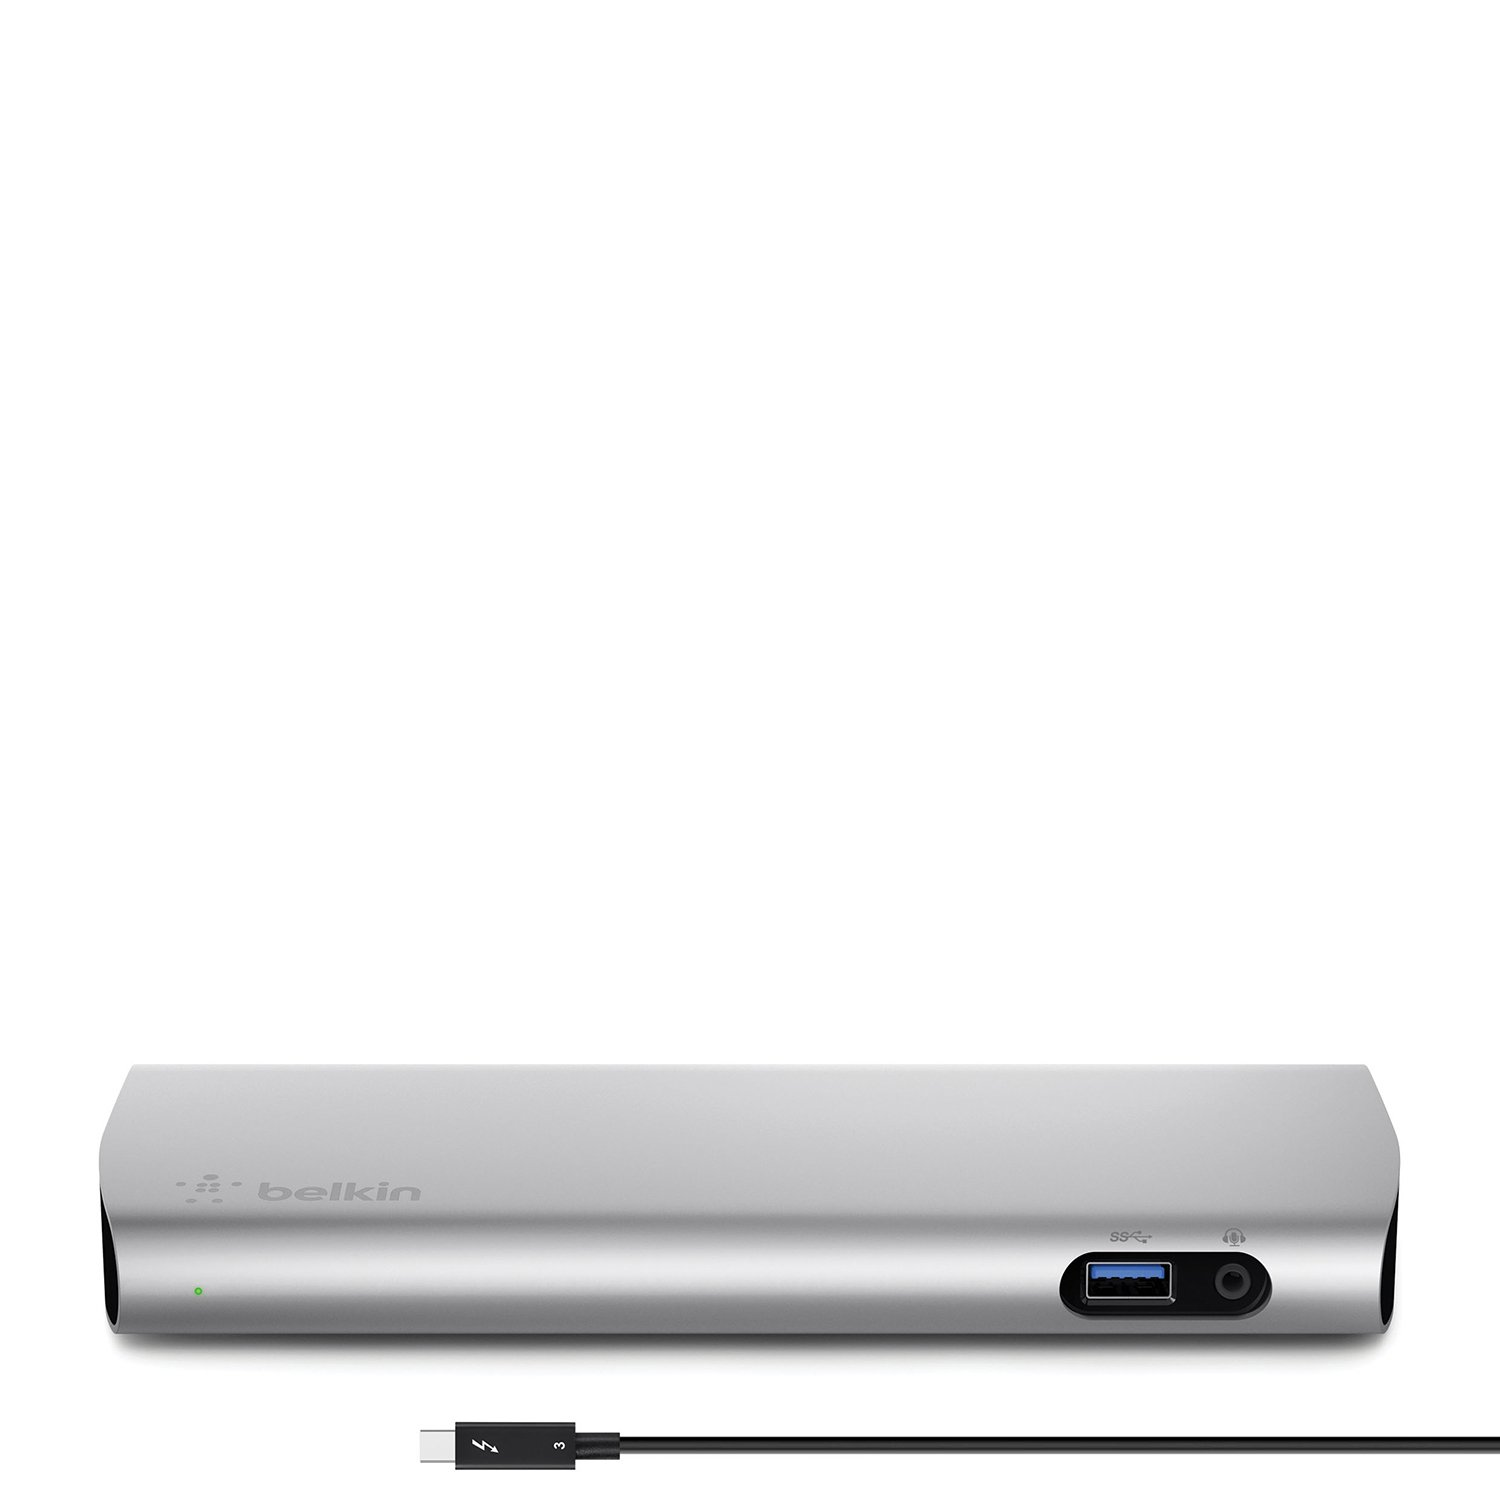 Belkin Thunderbolt 3 Express Dock HD with 3.3-Foot Thunderbolt 3 Cable, 40 Gbps, Only Compatible with 2016 MacBook Pro